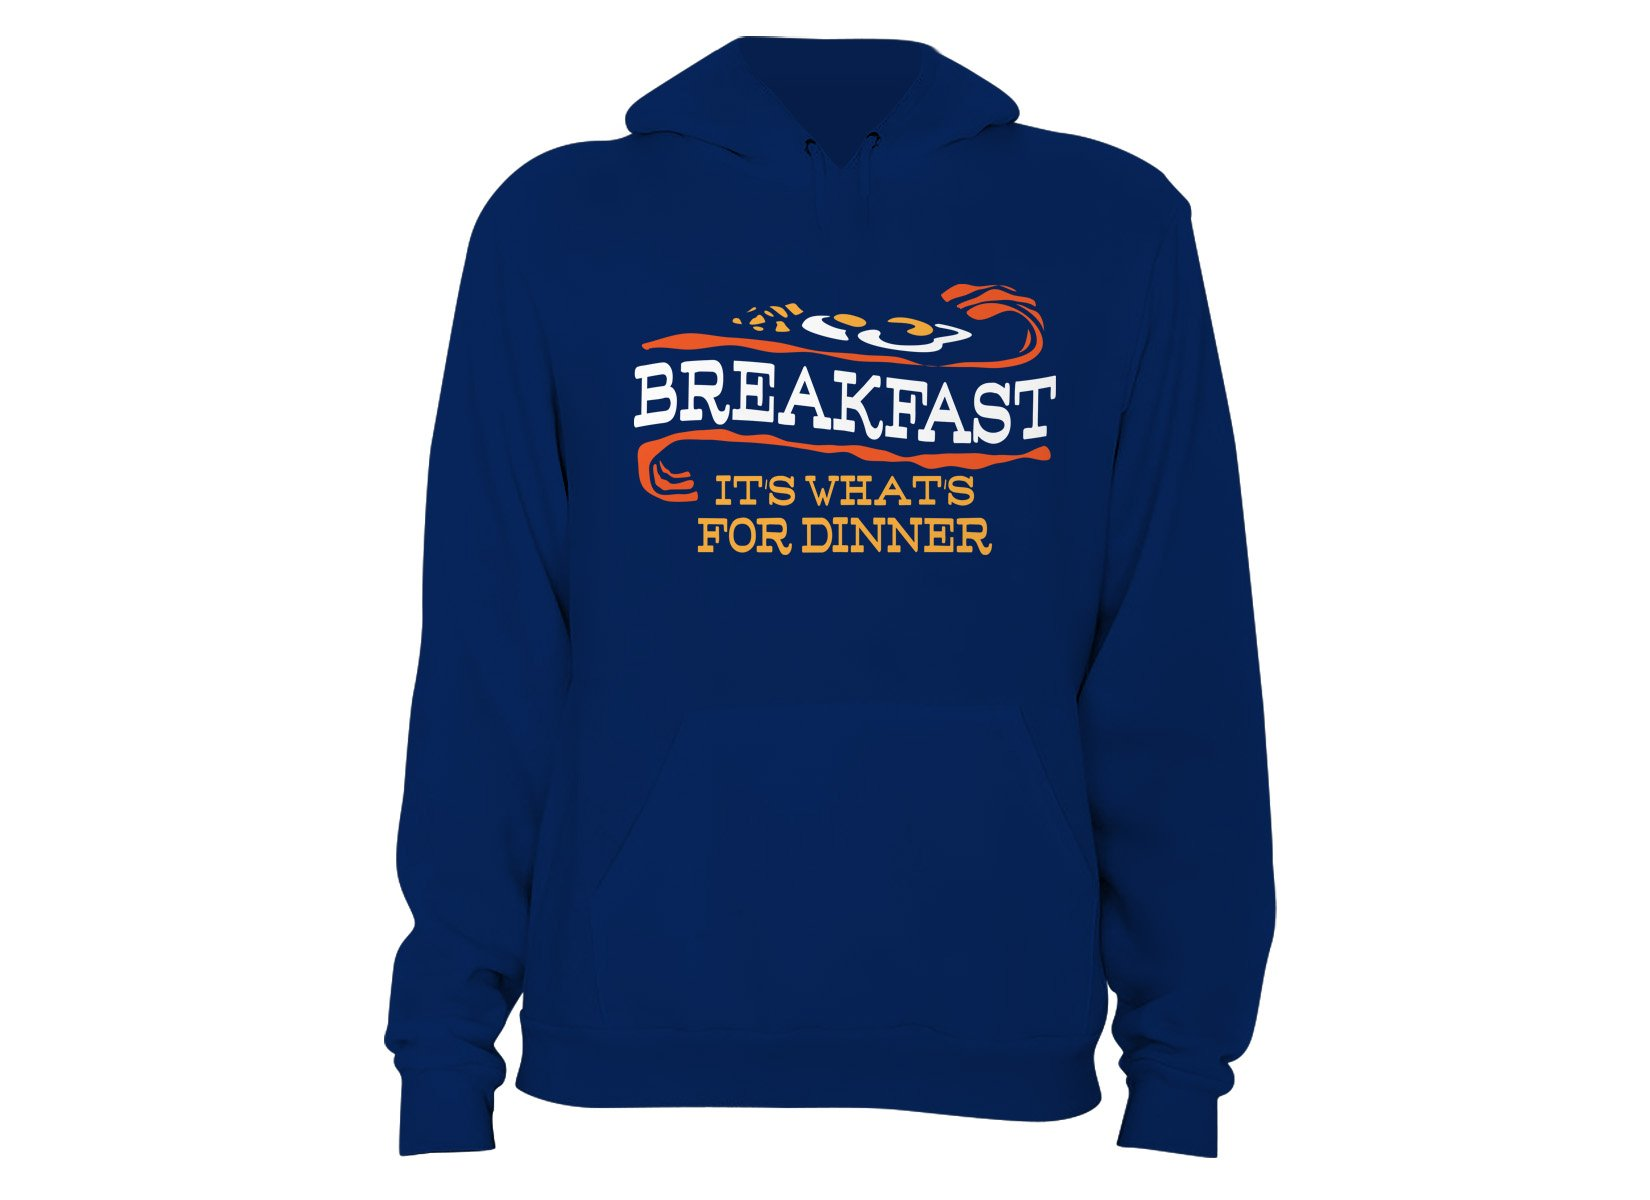 Breakfast, It's What's For Dinner on Hoodie